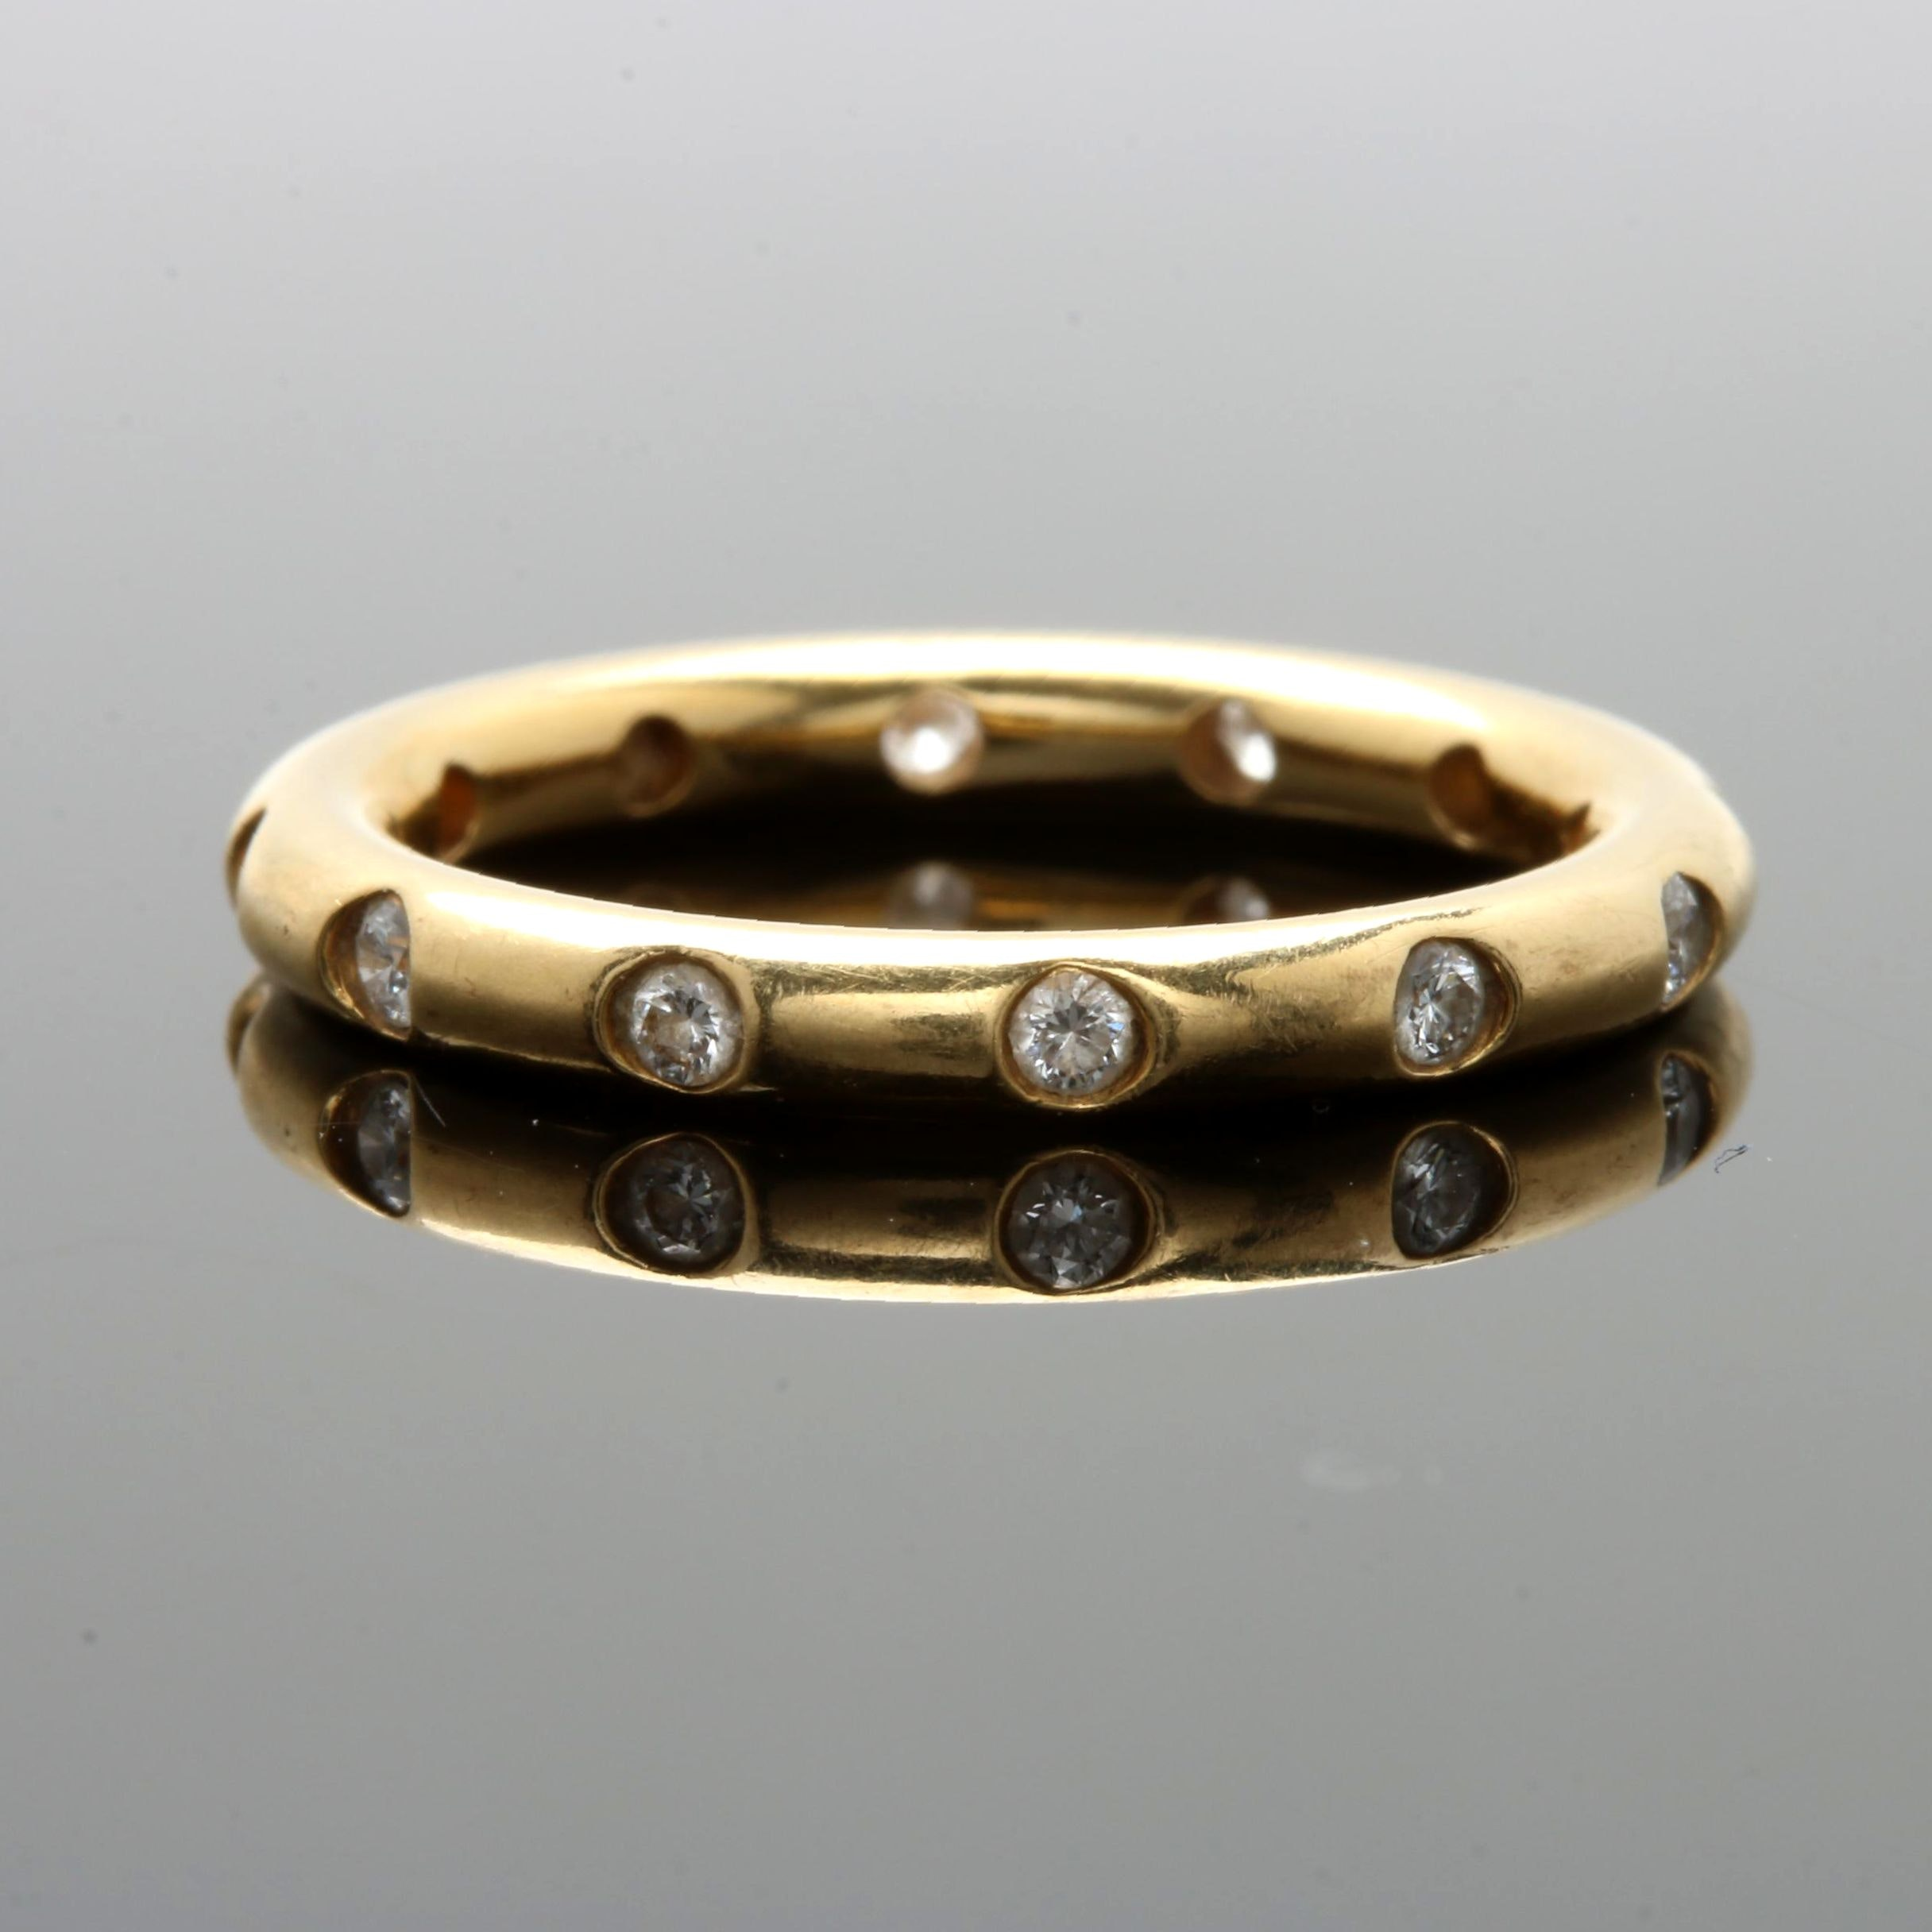 Tiffany & Co. 18K Yellow Gold Diamond Eternity Band